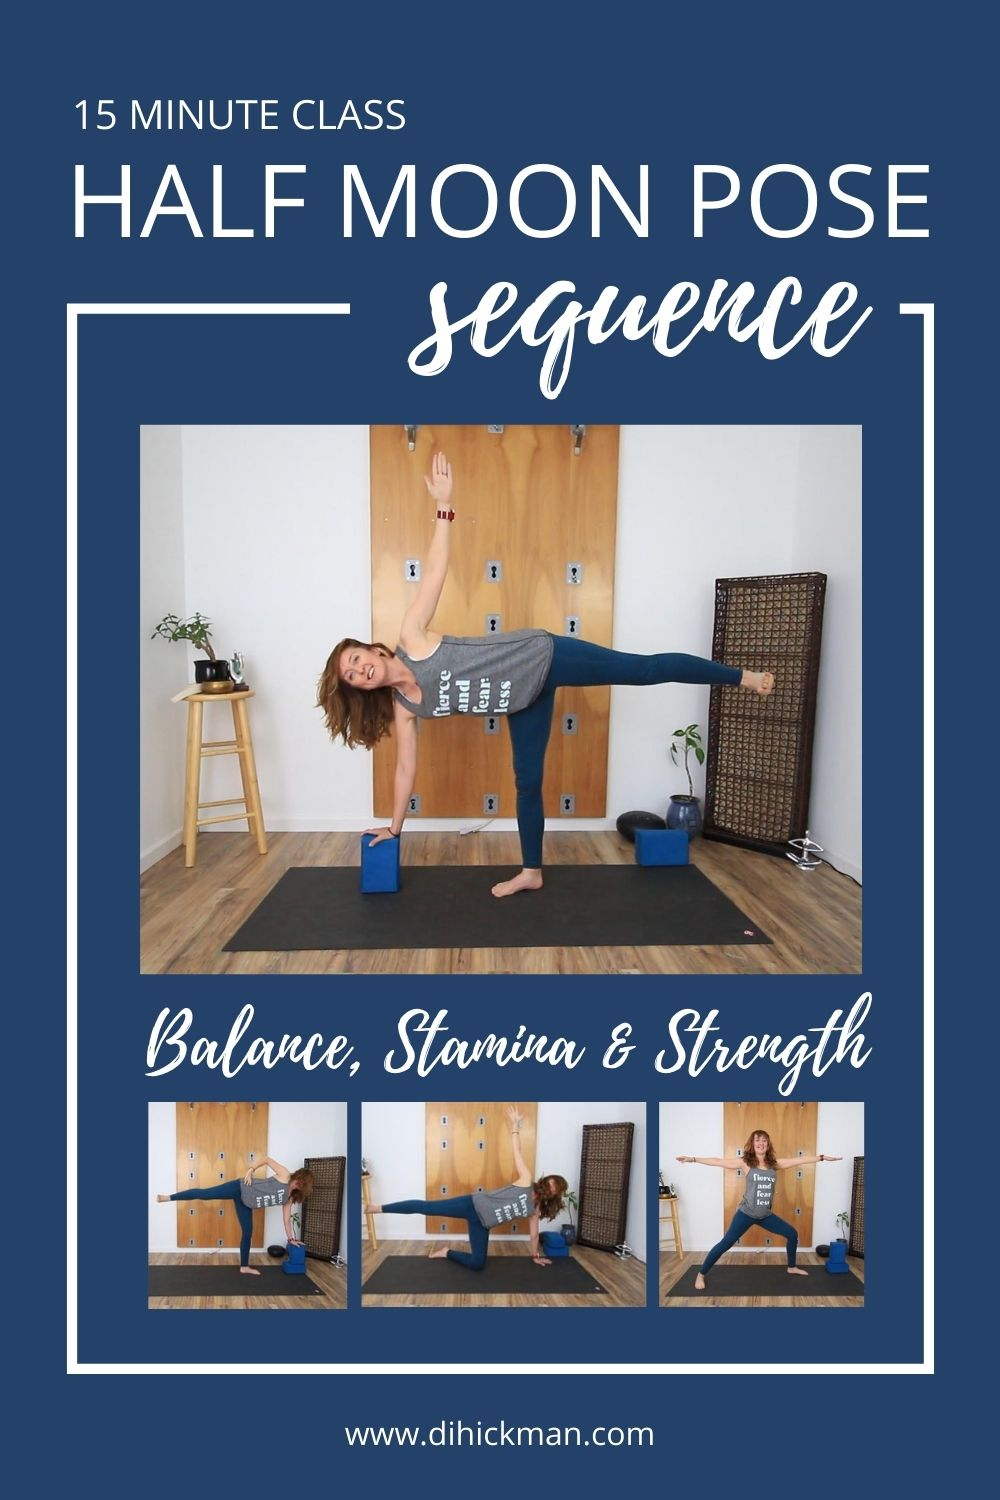 15 minute class, half moon pose sequence